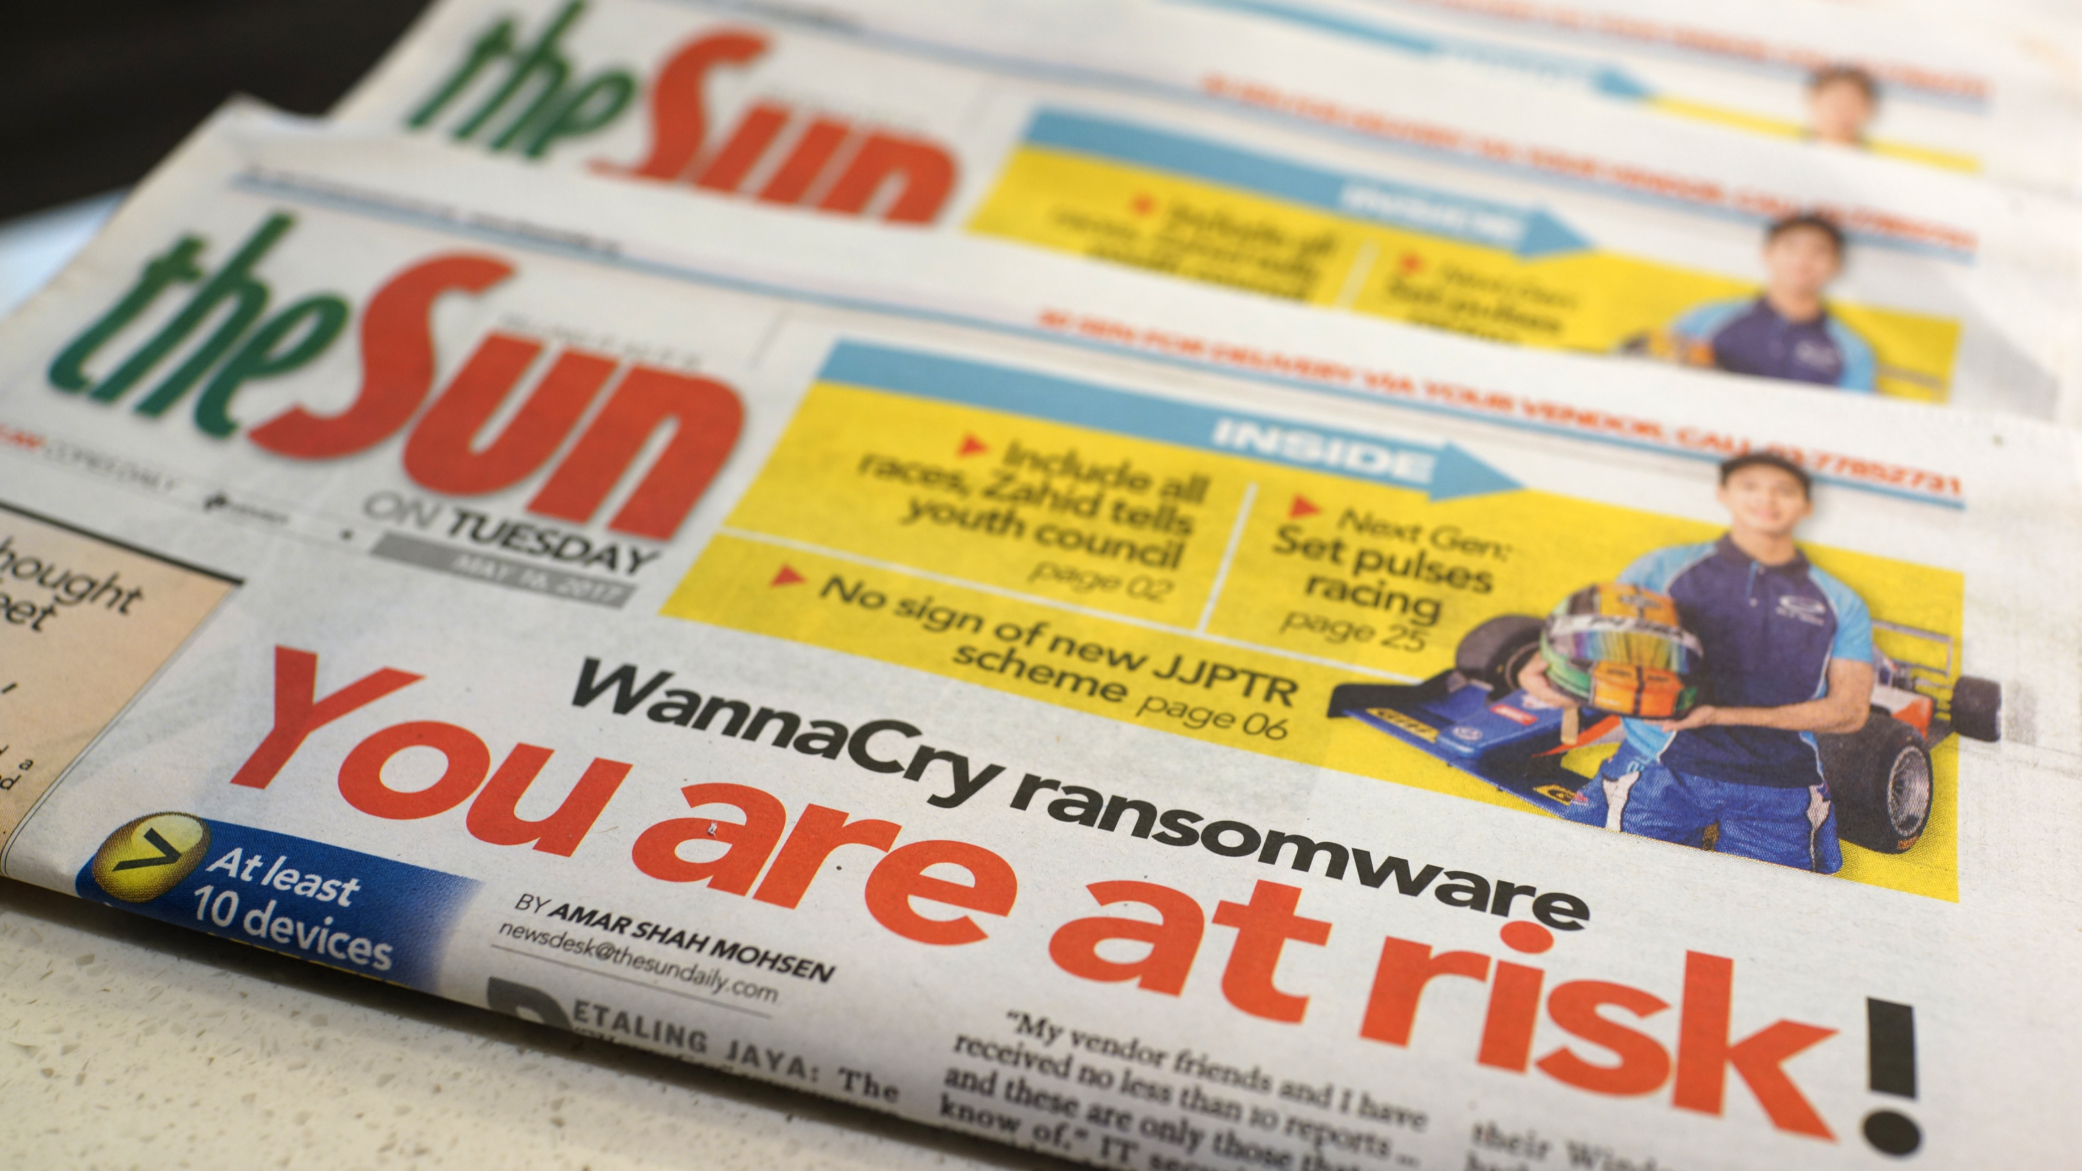 Newspaper with cybersecurity headline